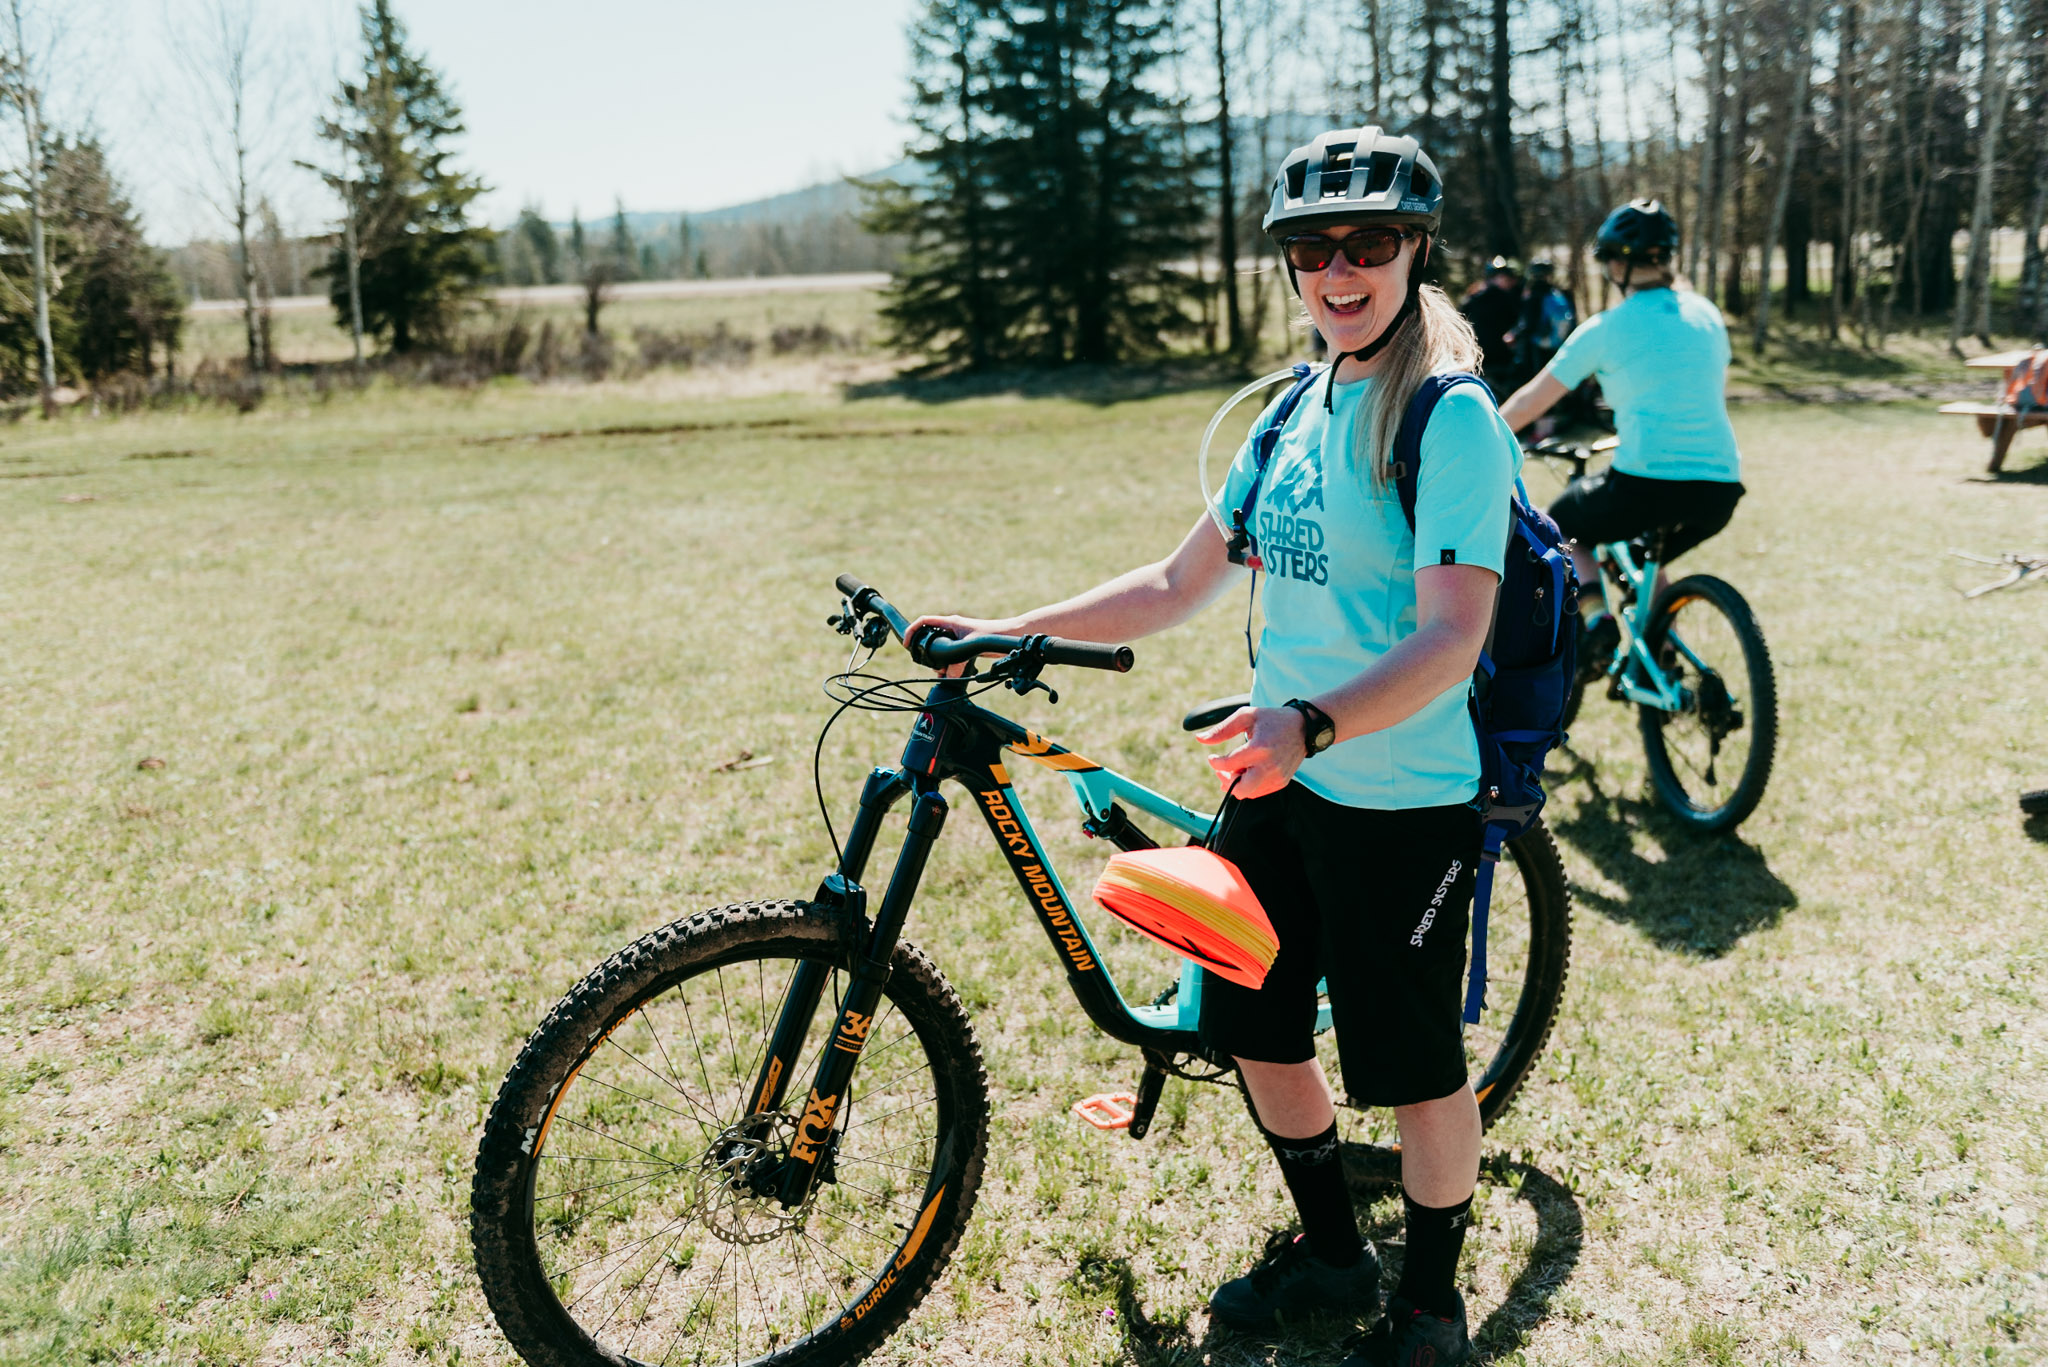 May 27, 2019 - Shred Sisters - Bragg Creek-9.jpg